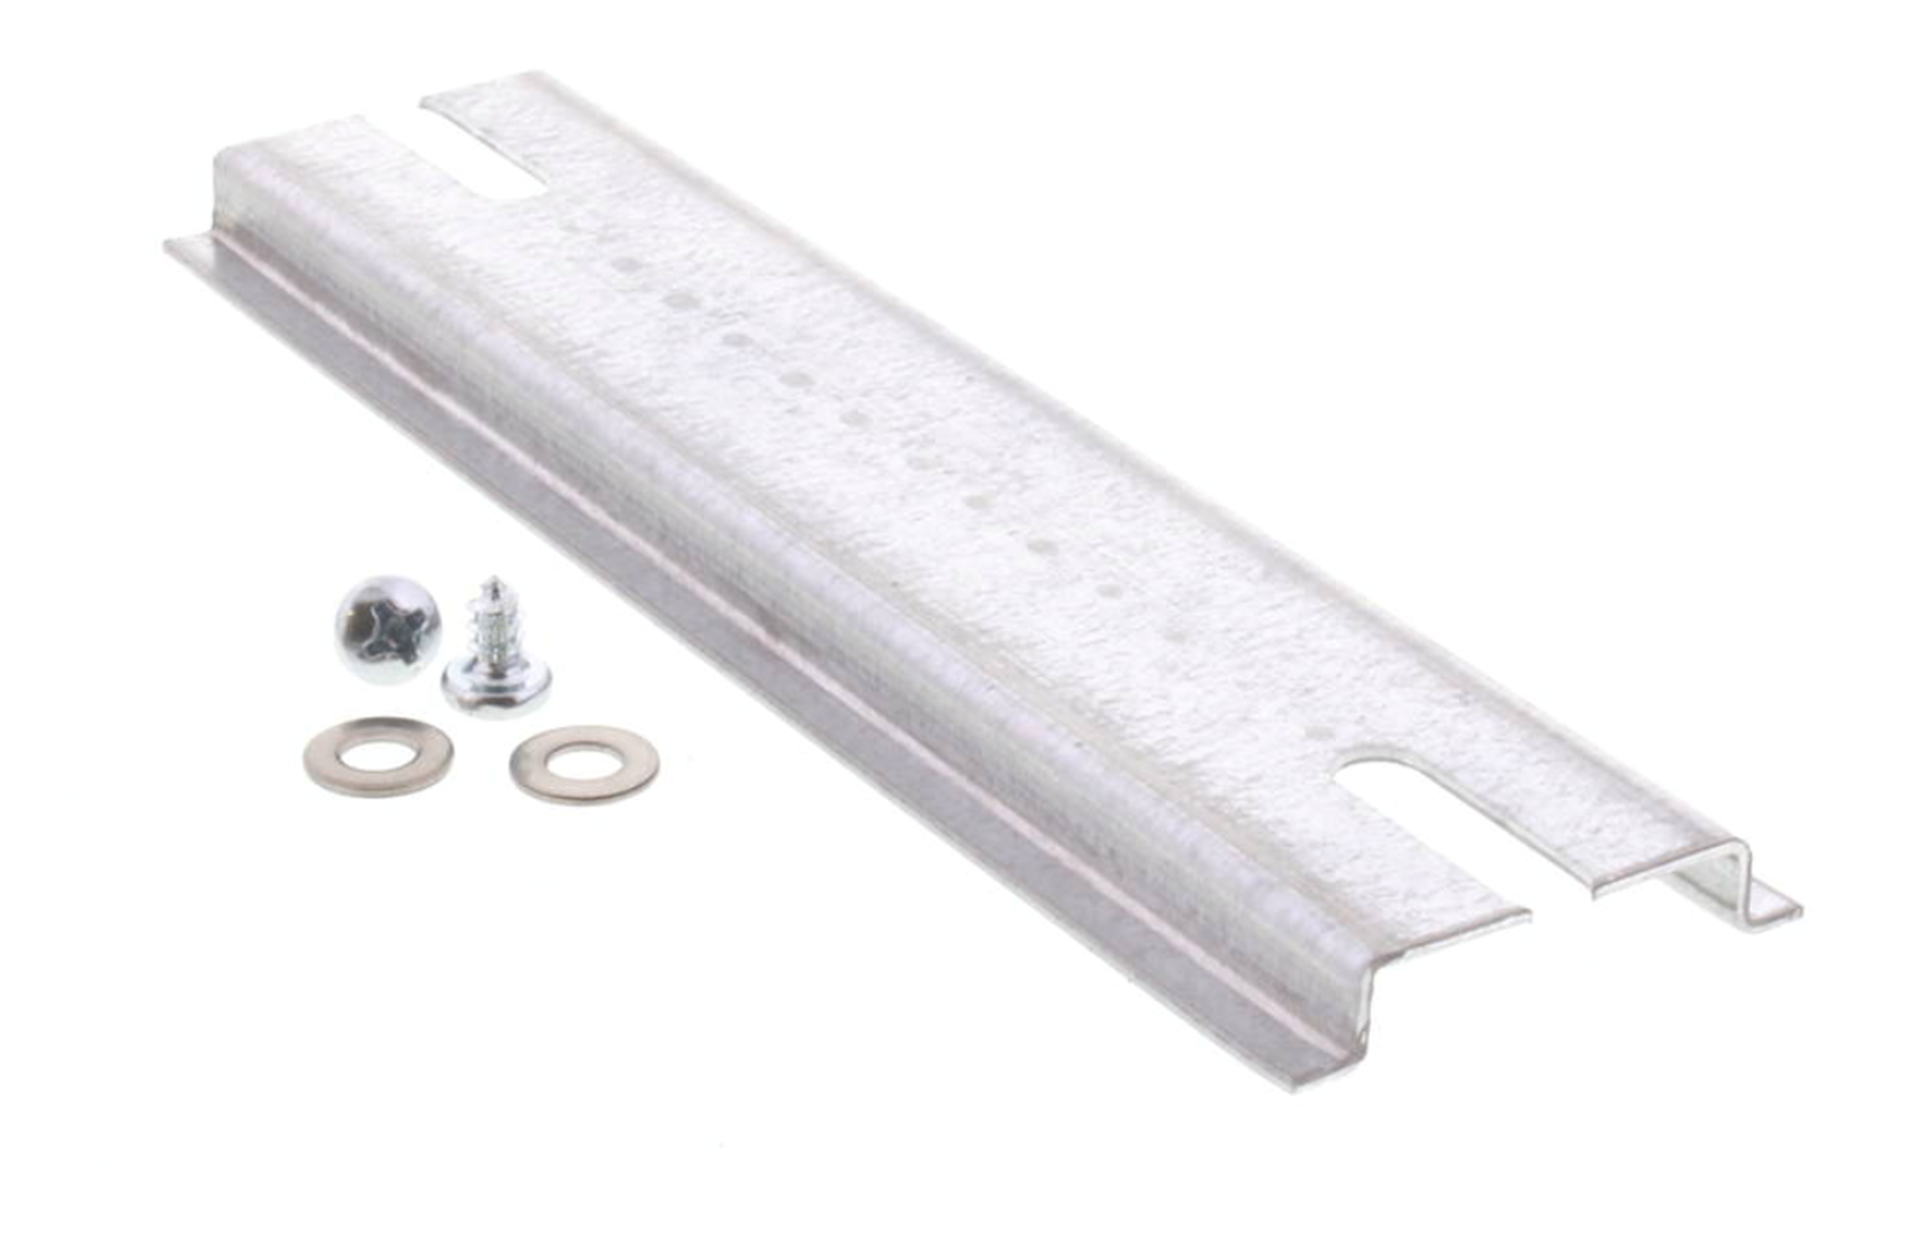 Wiska DIN Rail Kit - COMBI 1010 10060363